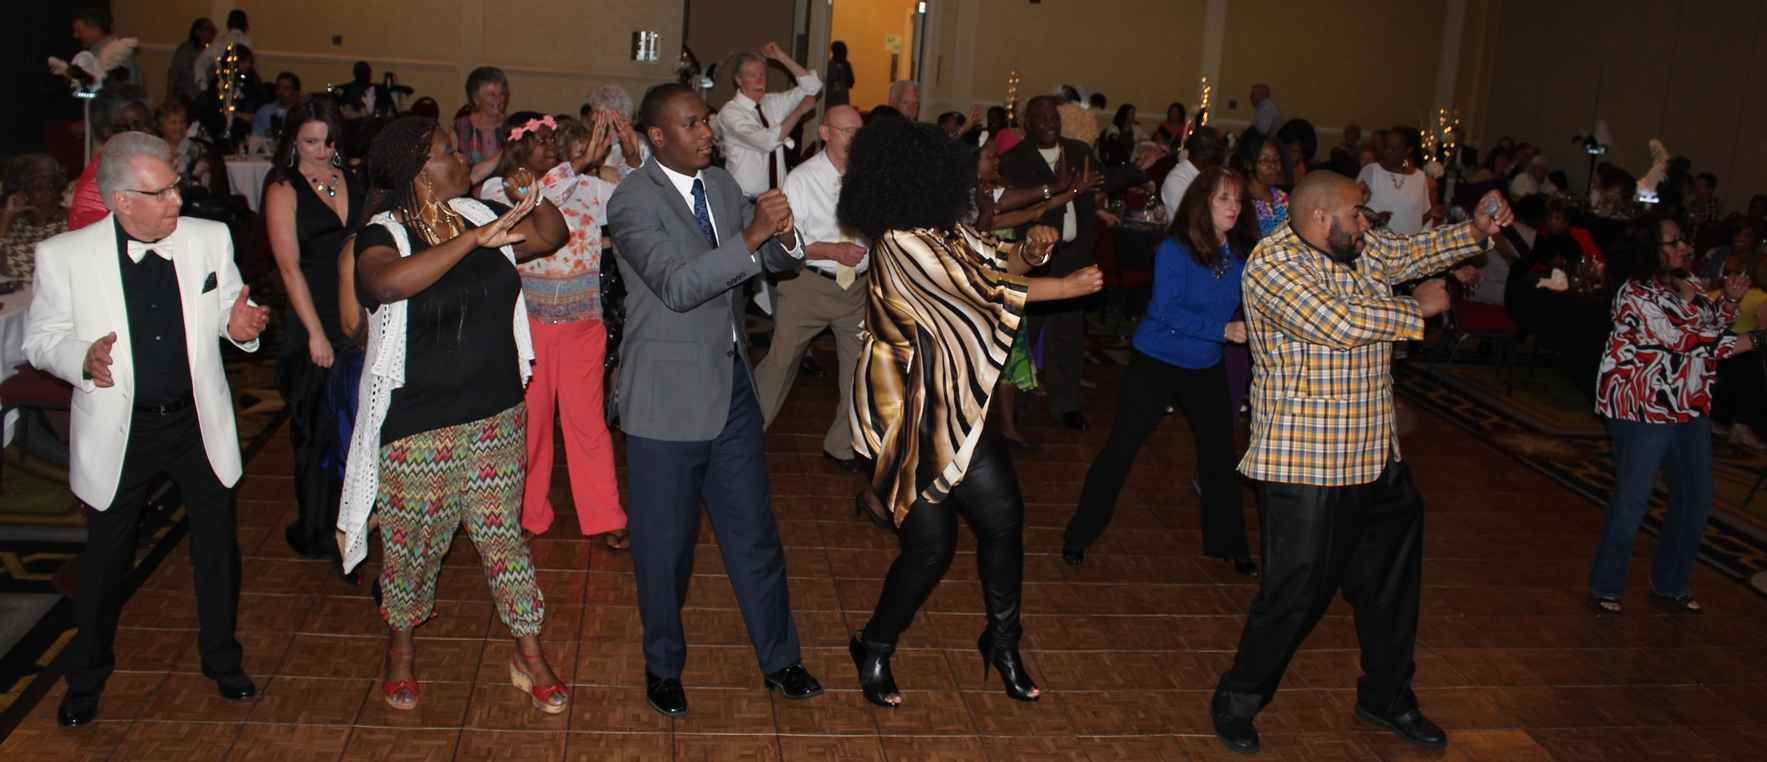 2019 Blast From the Past Annual Volunteer Award Dinner & Dance image